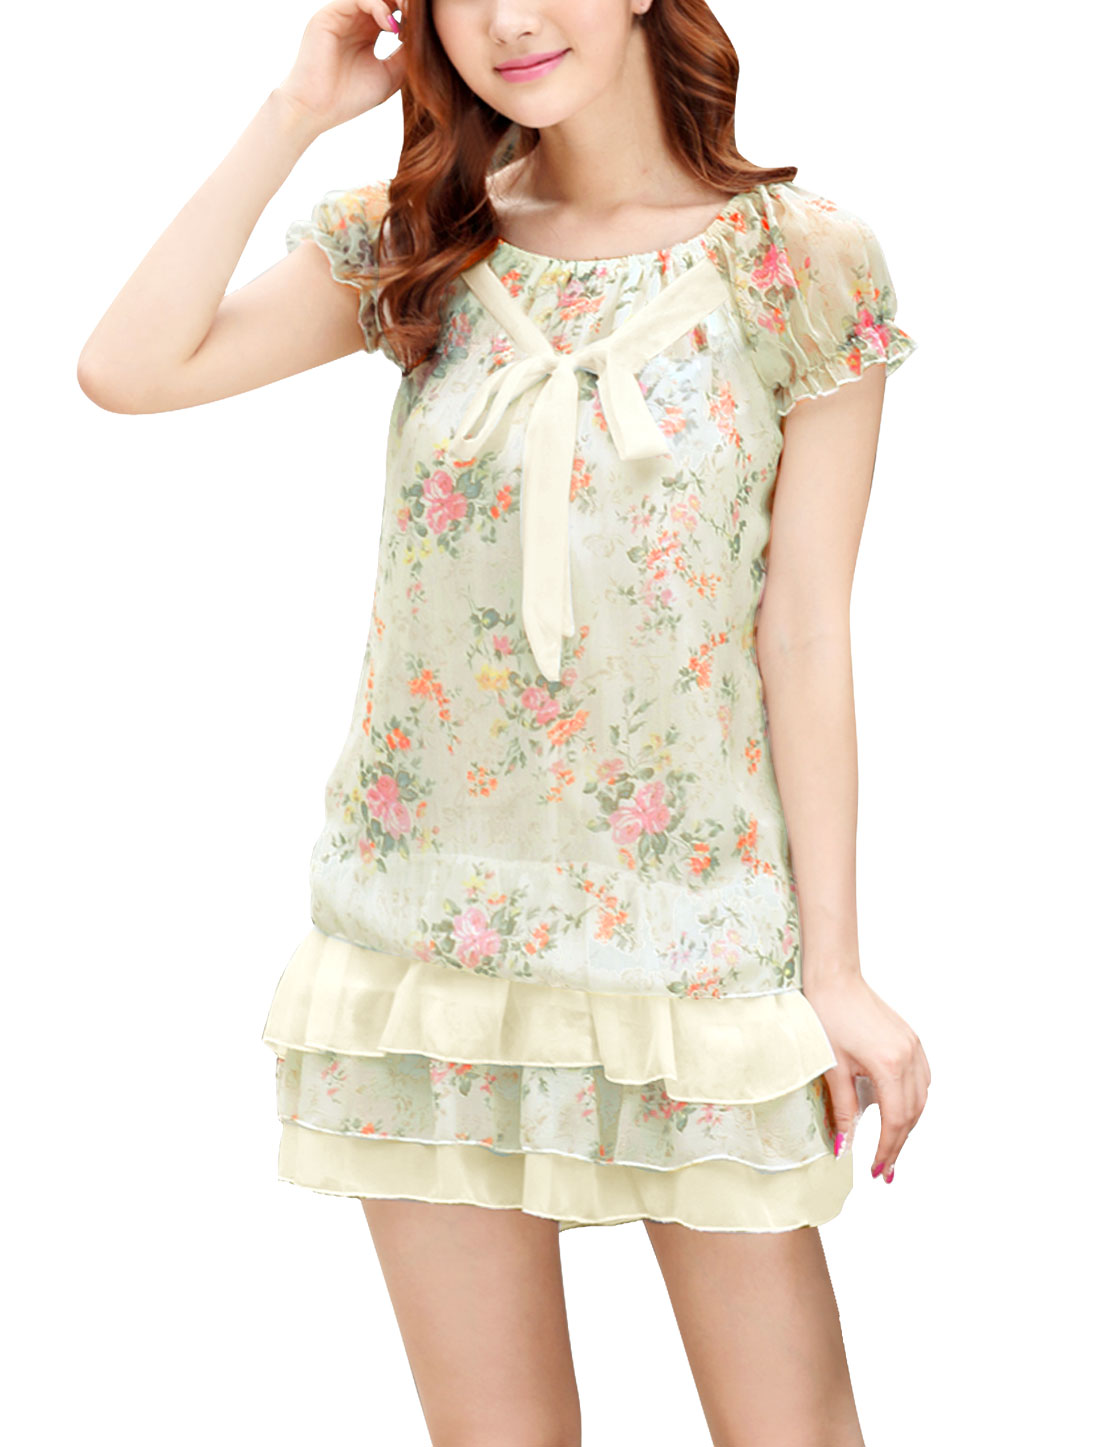 Ladies Boat Neck Puff Sleeve Floral Prints Ruffled Dress Beige XS